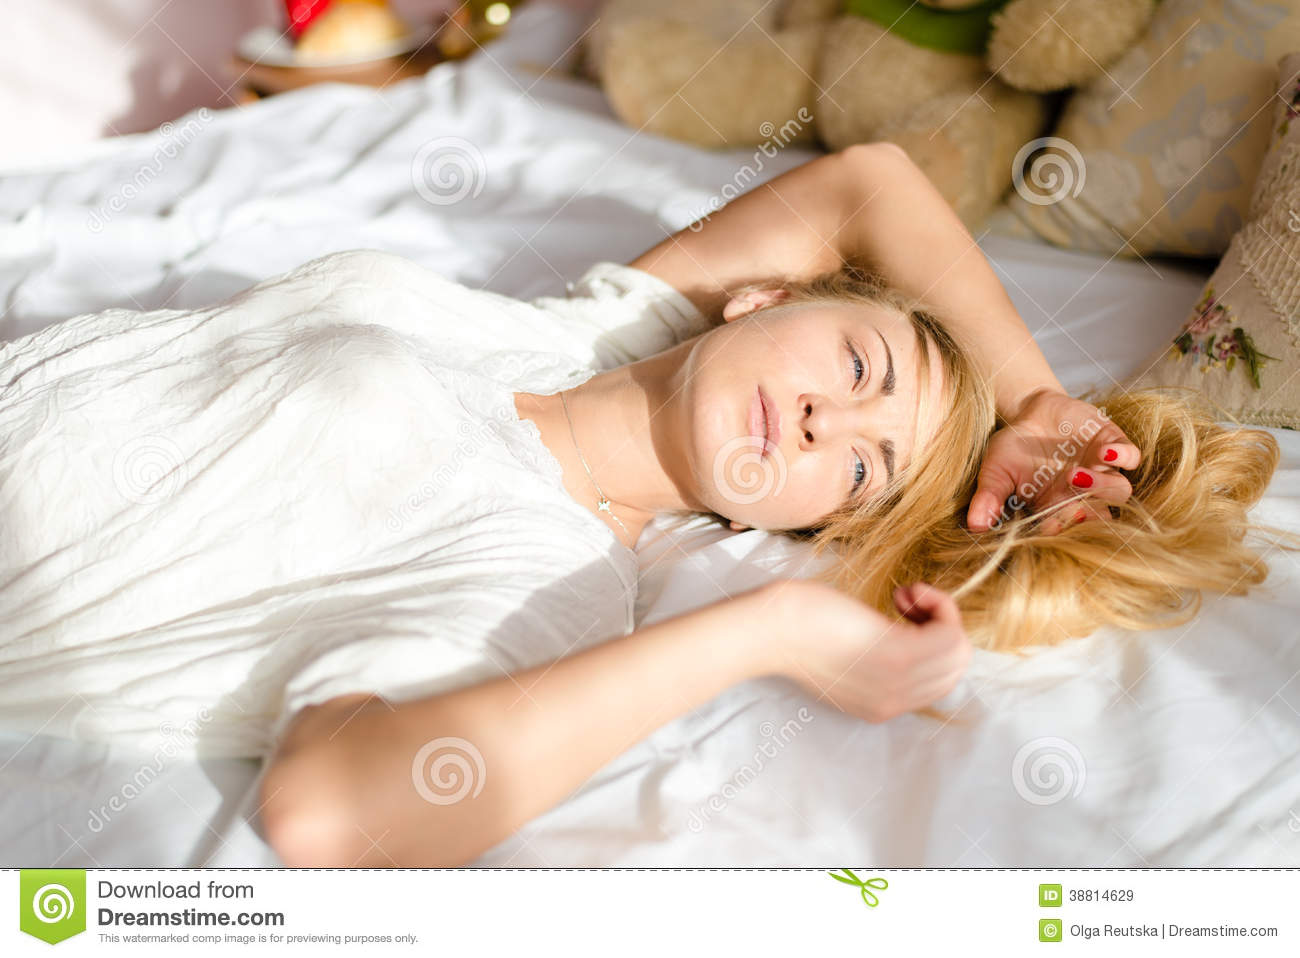 Relaxing attractive sincere young blond woman tender girl lying in bed in the sunlight